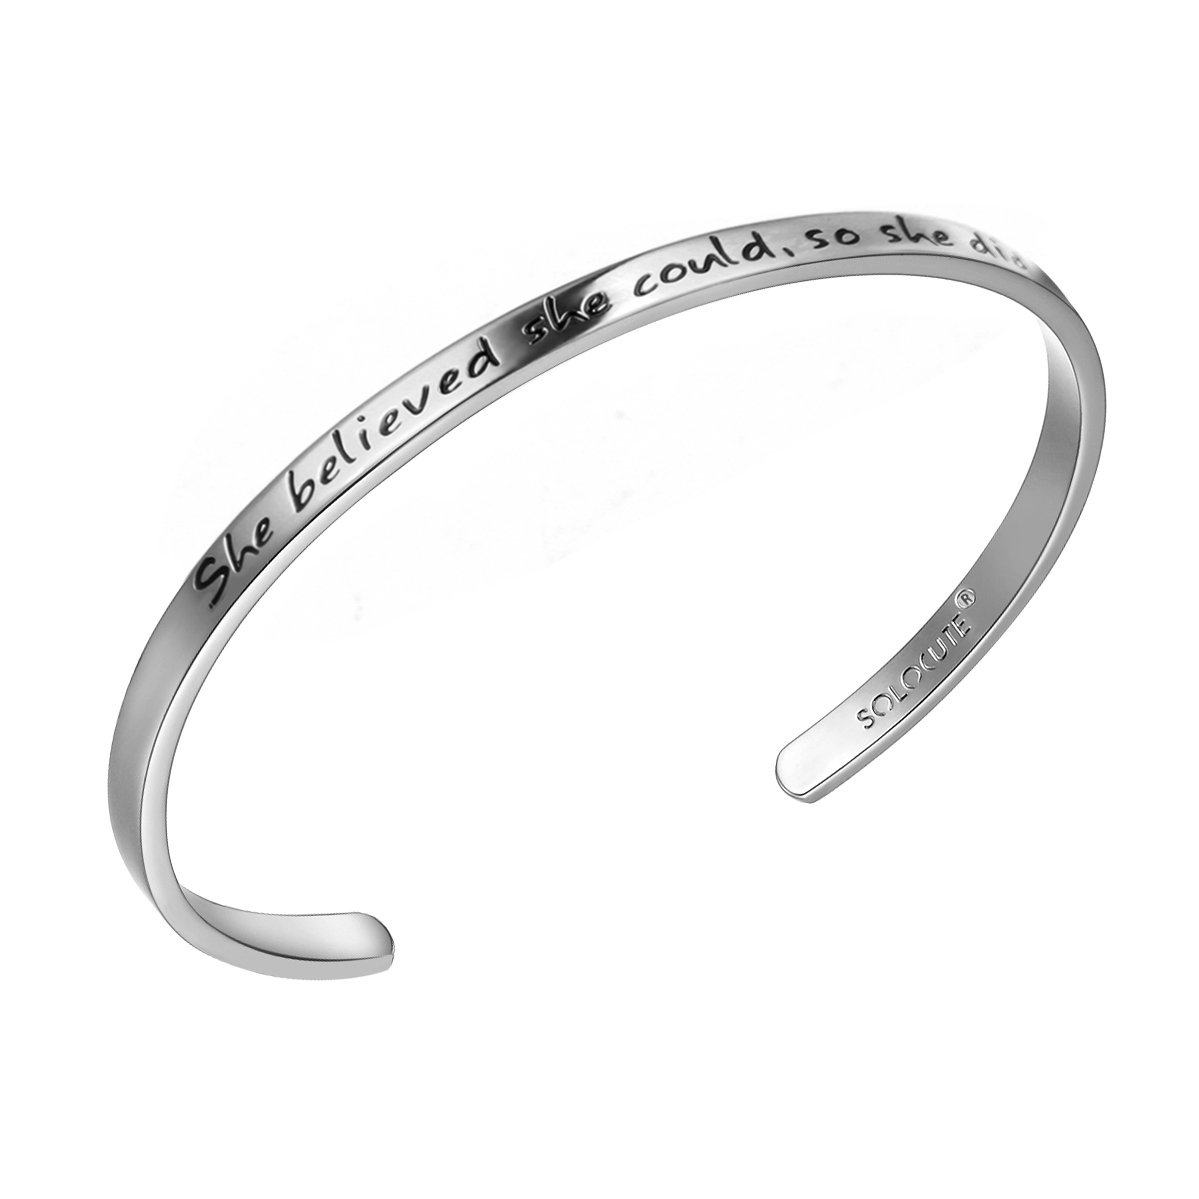 SOLOCUTE Cuff Bangle Bracelet Engraved She Believed she Could So she did Inspirational Jewelry SC024GD